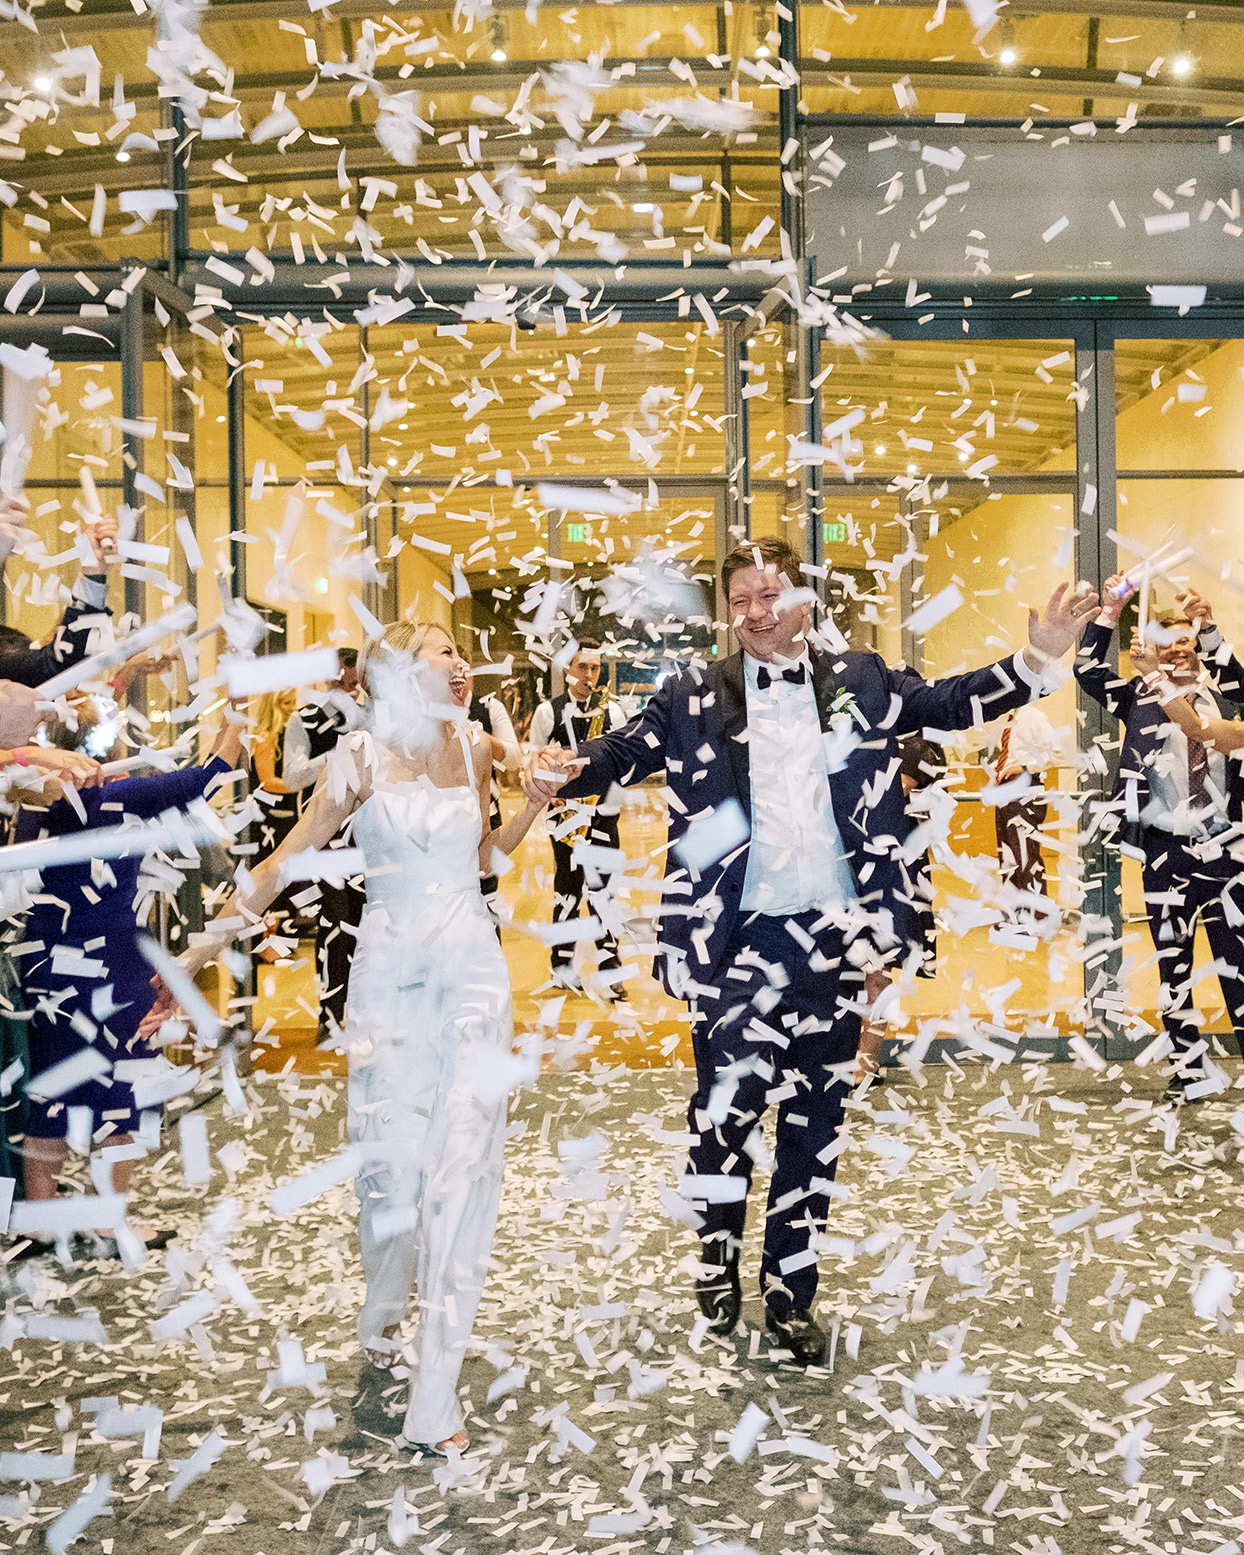 bride and groom exiting wedding showered in confetti